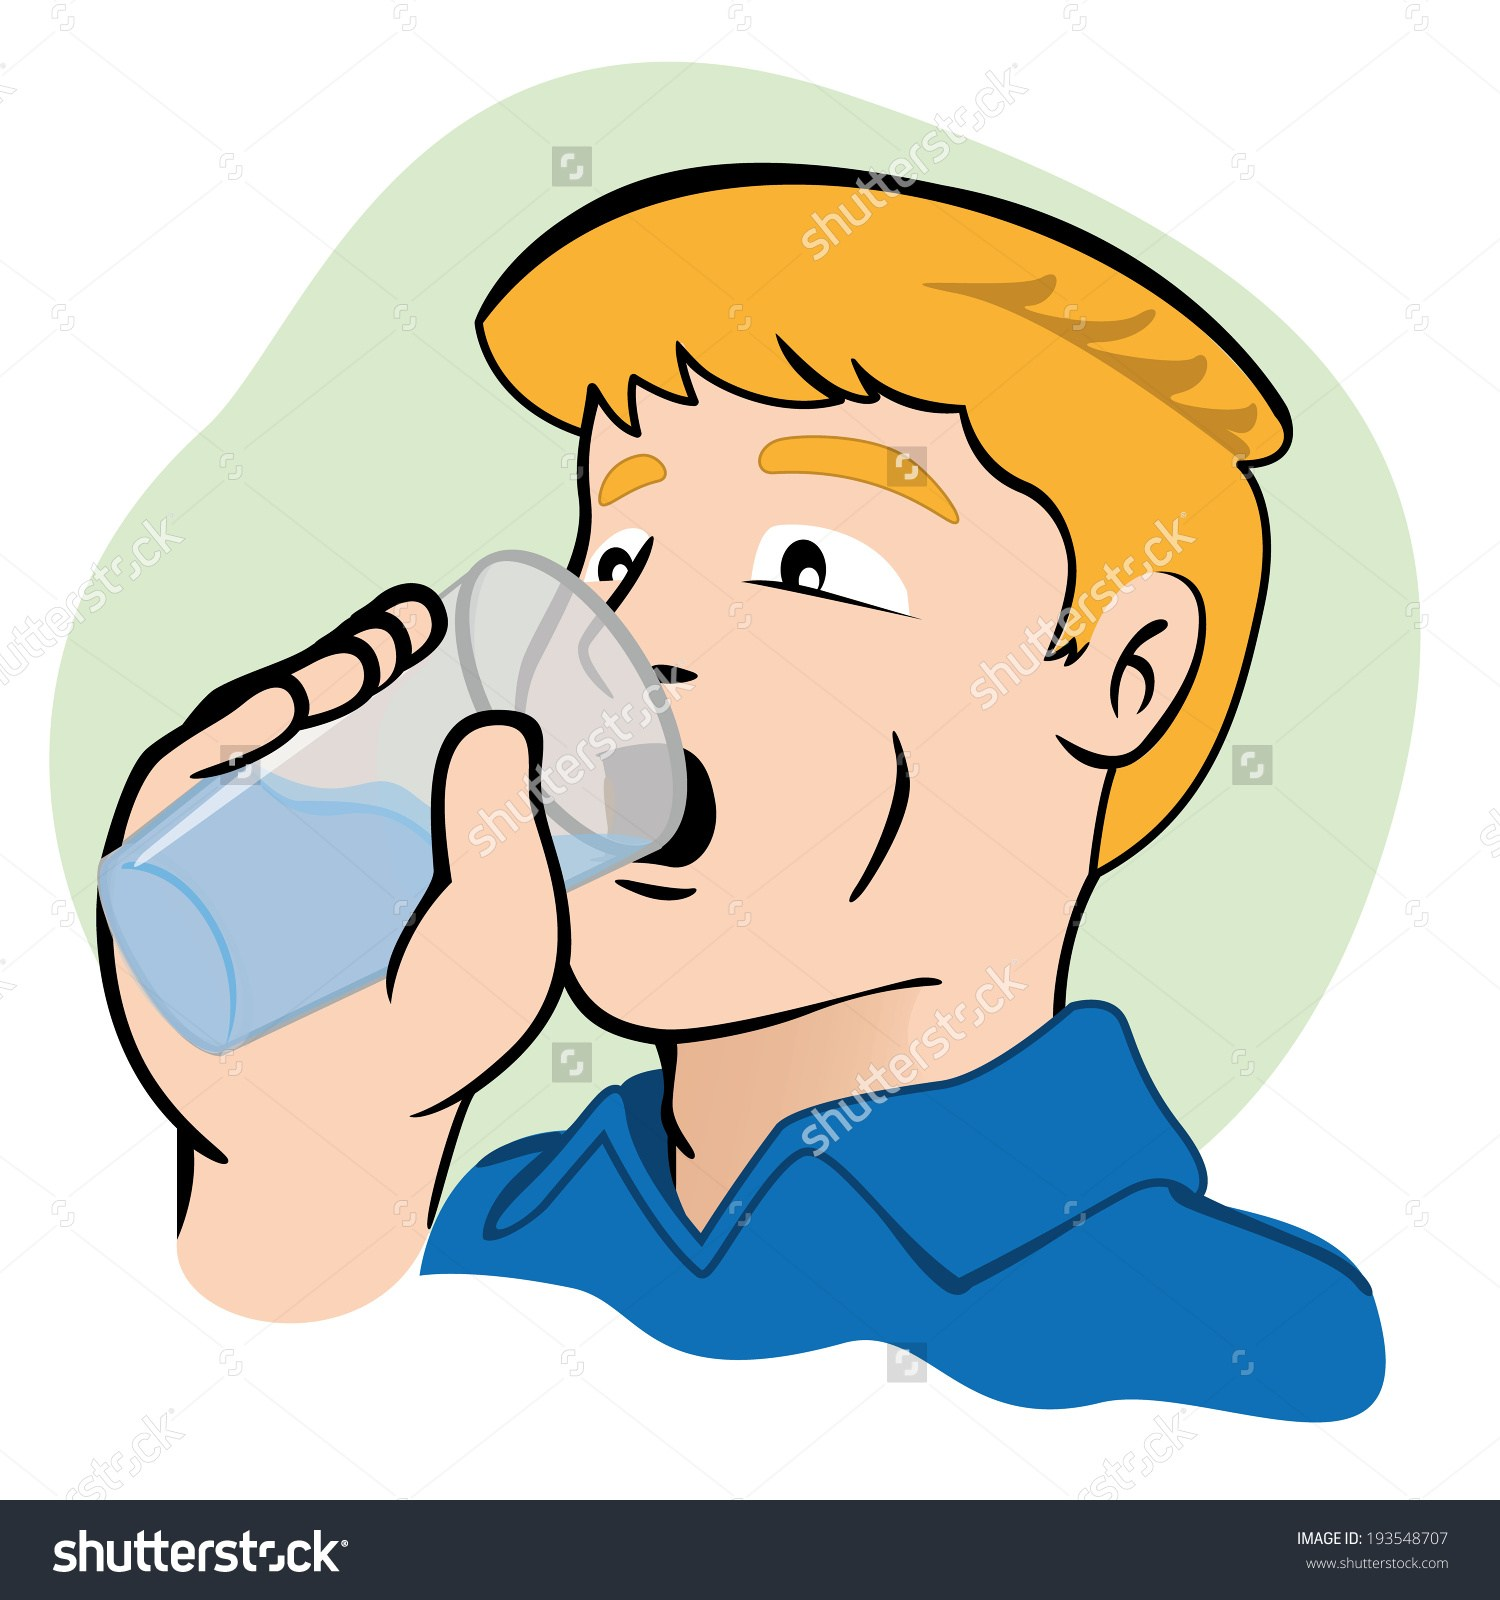 drinking water clipart at getdrawings com free for personal use rh getdrawings com drinking water clipart images drinking water clip art free images